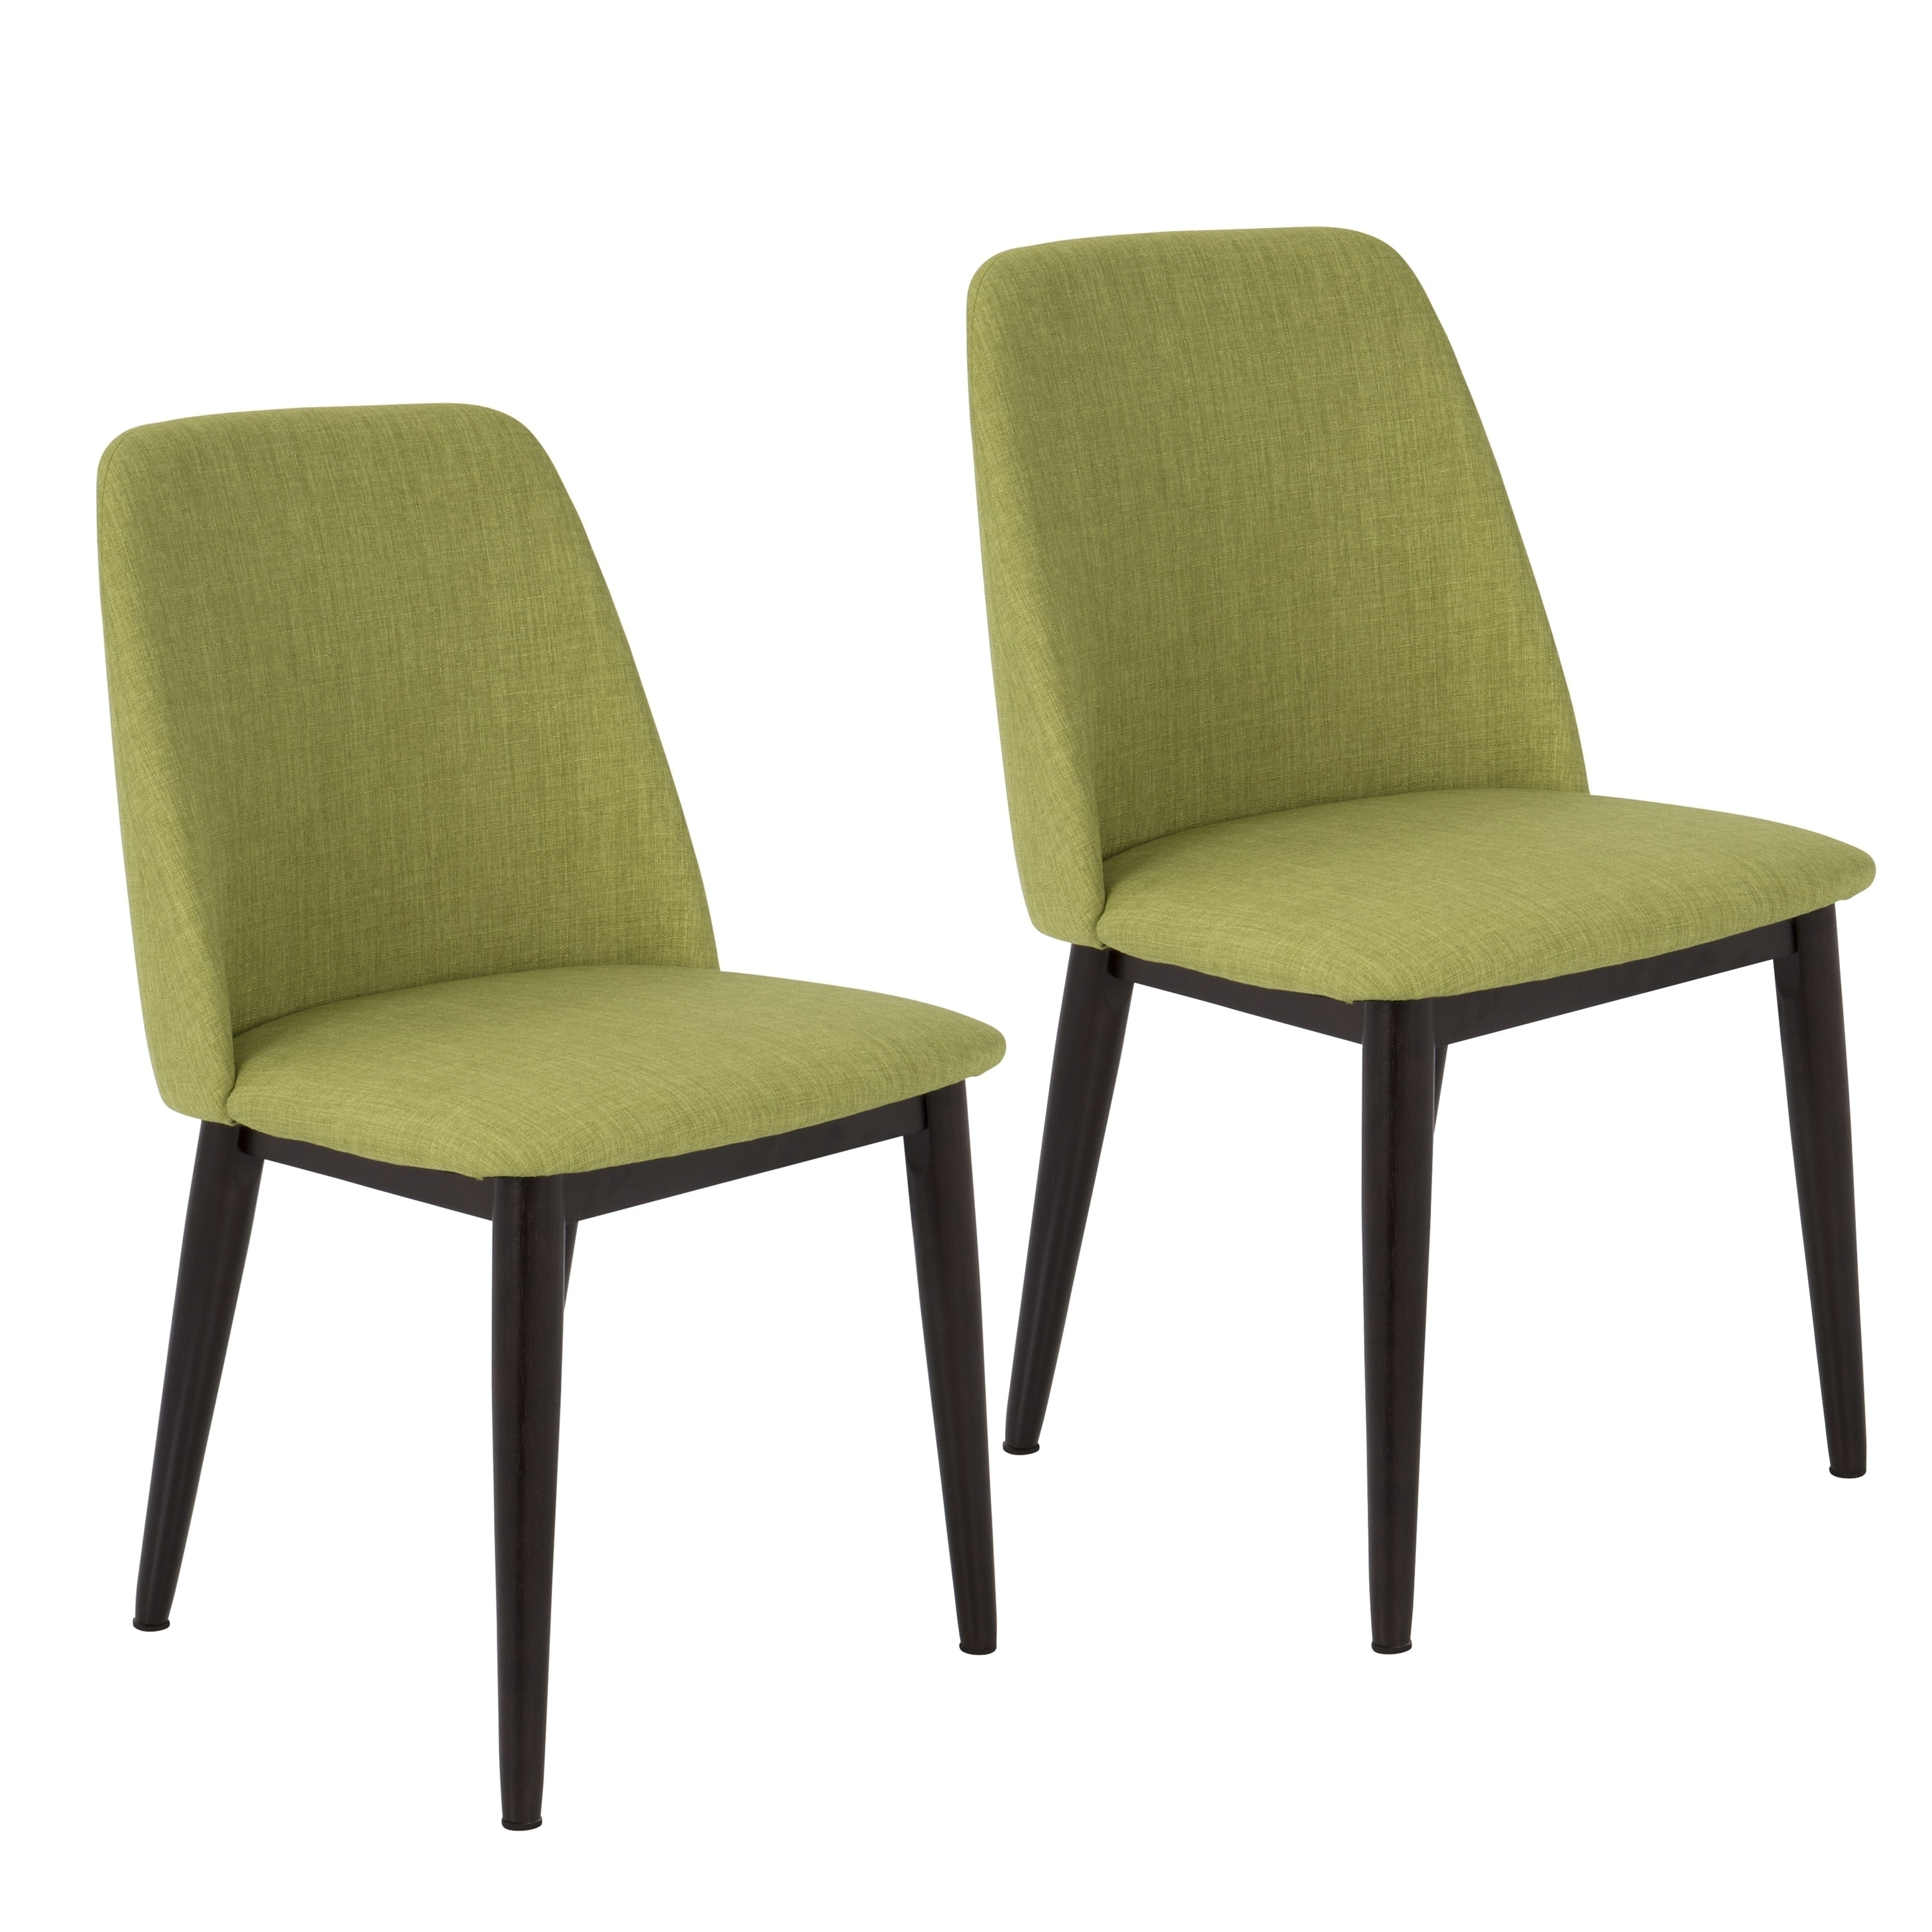 Tintori fabric upholstered mid century style dining chairs set of 2